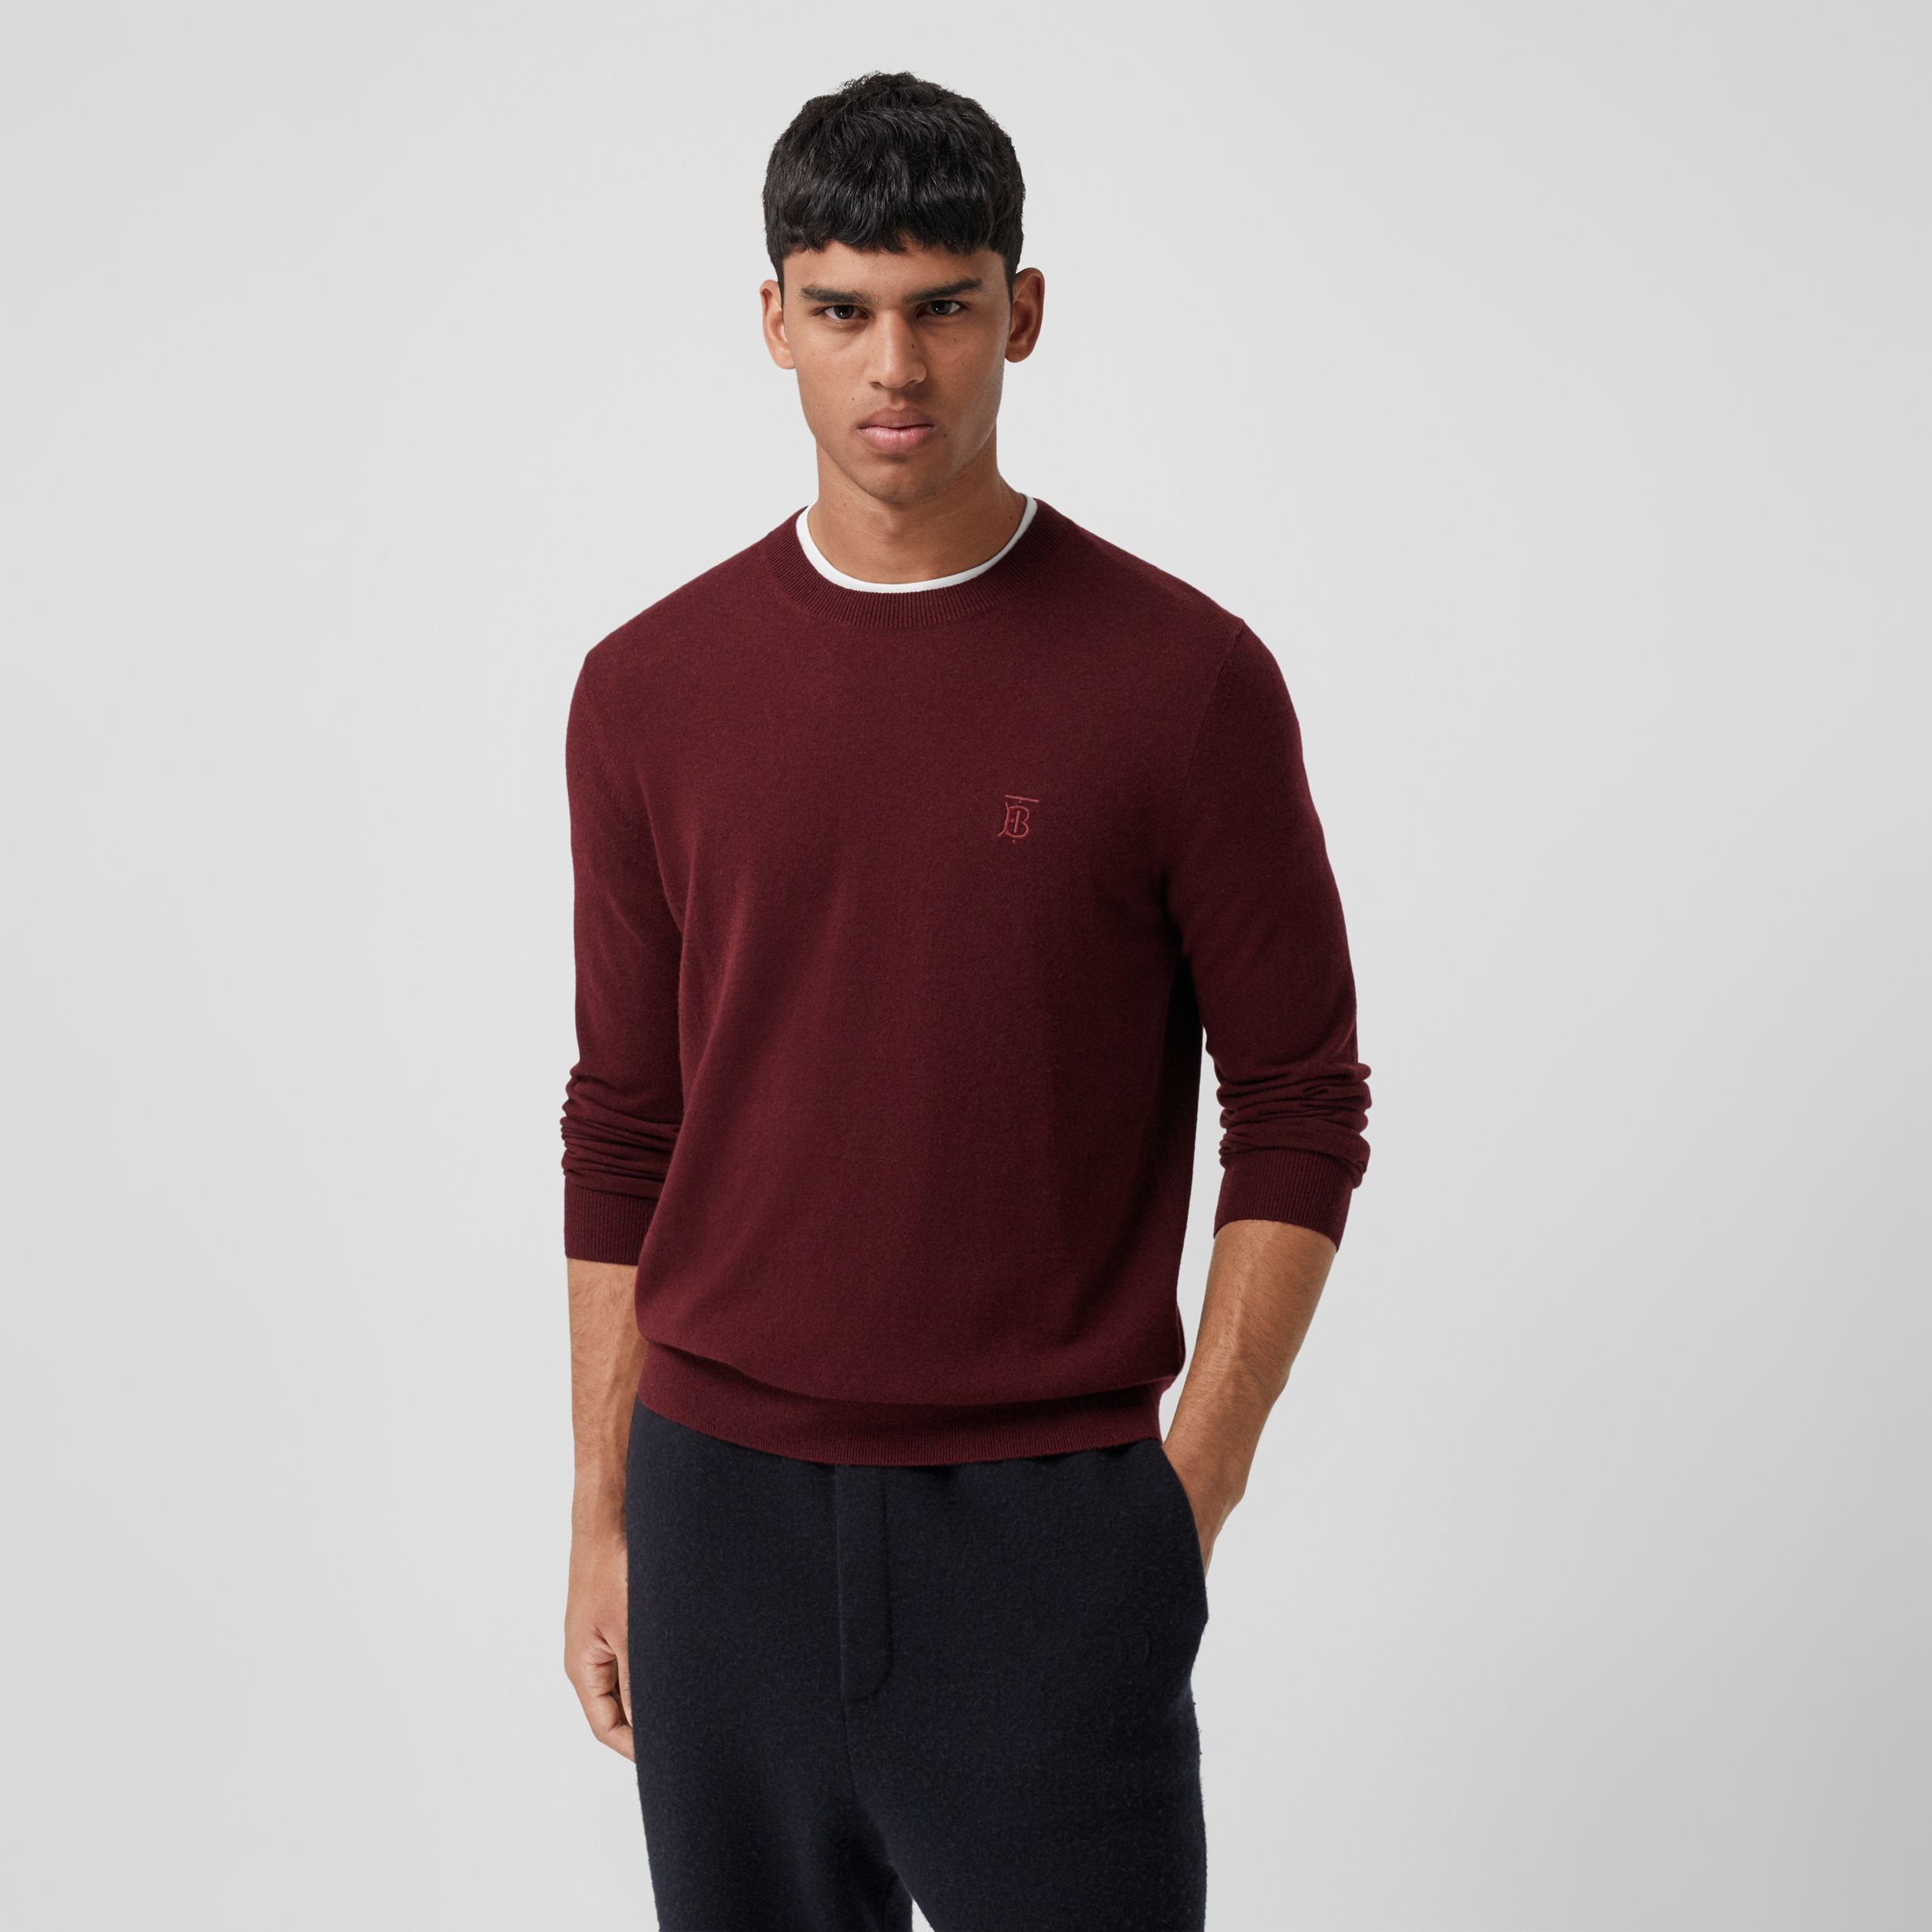 Monogram Motif Cashmere Sweater in Deep Merlot - Men | Burberry - 1